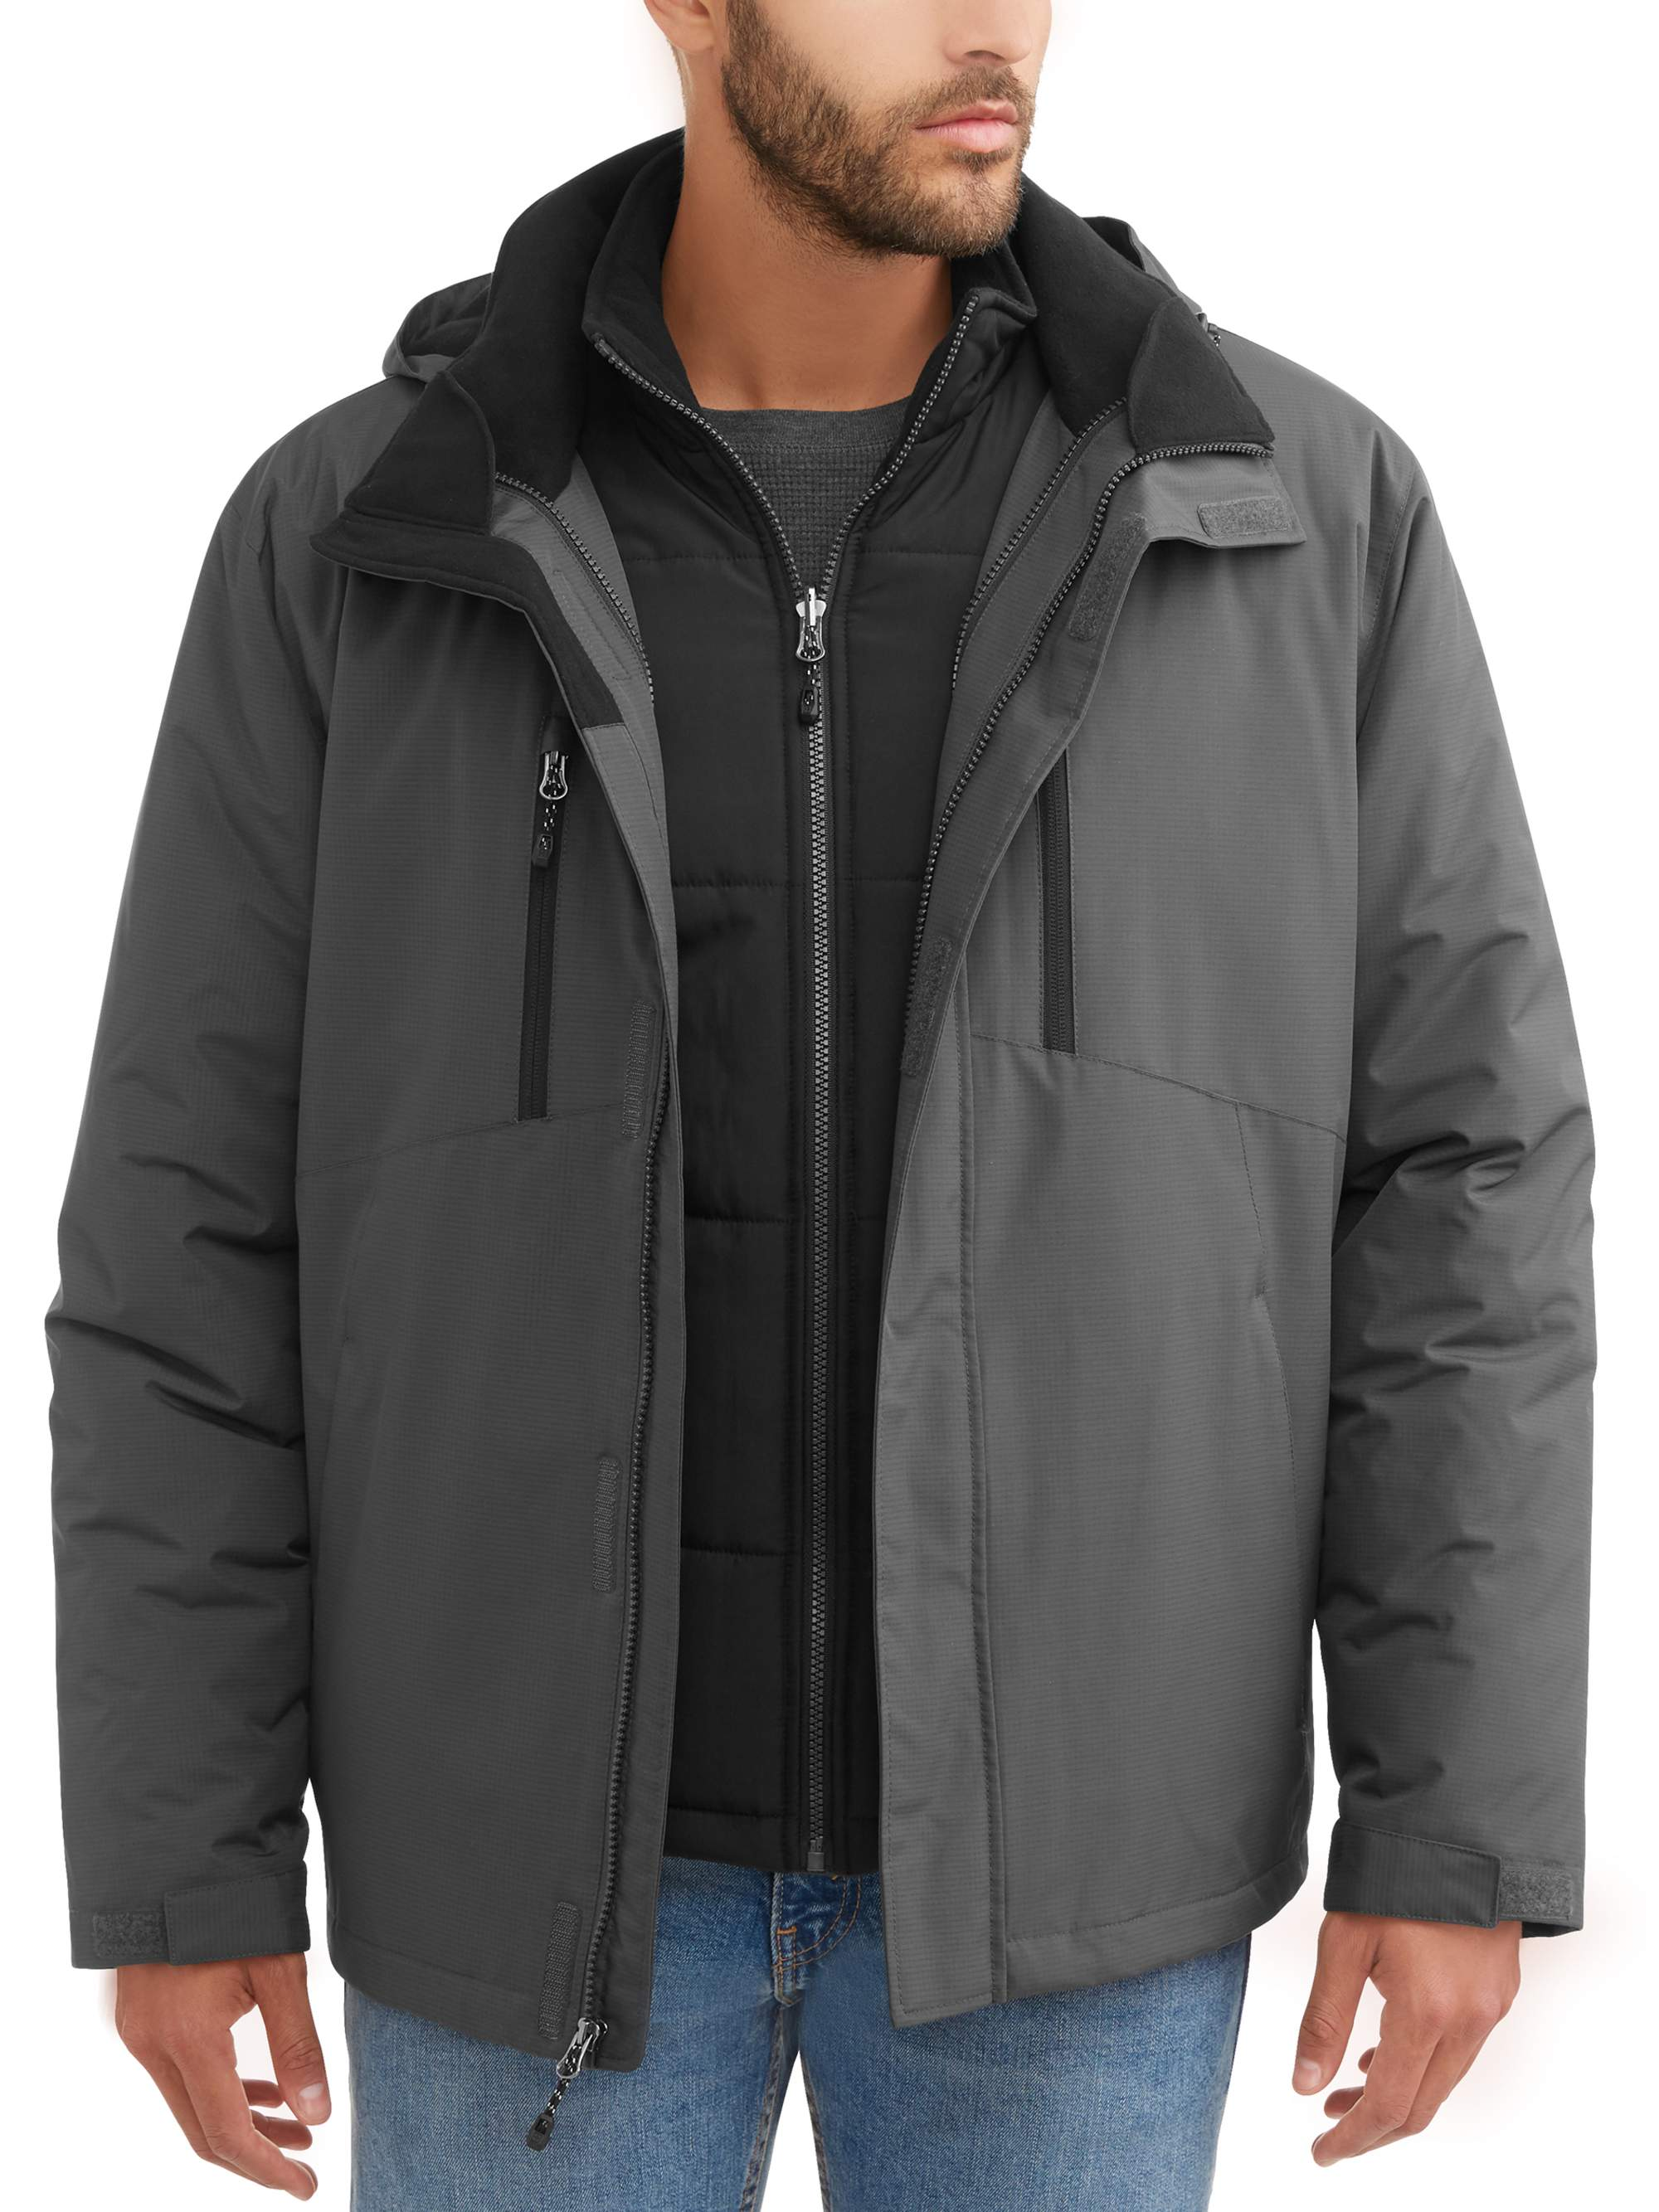 Men's 3 In 1 Systems Jacket up to size 5XL